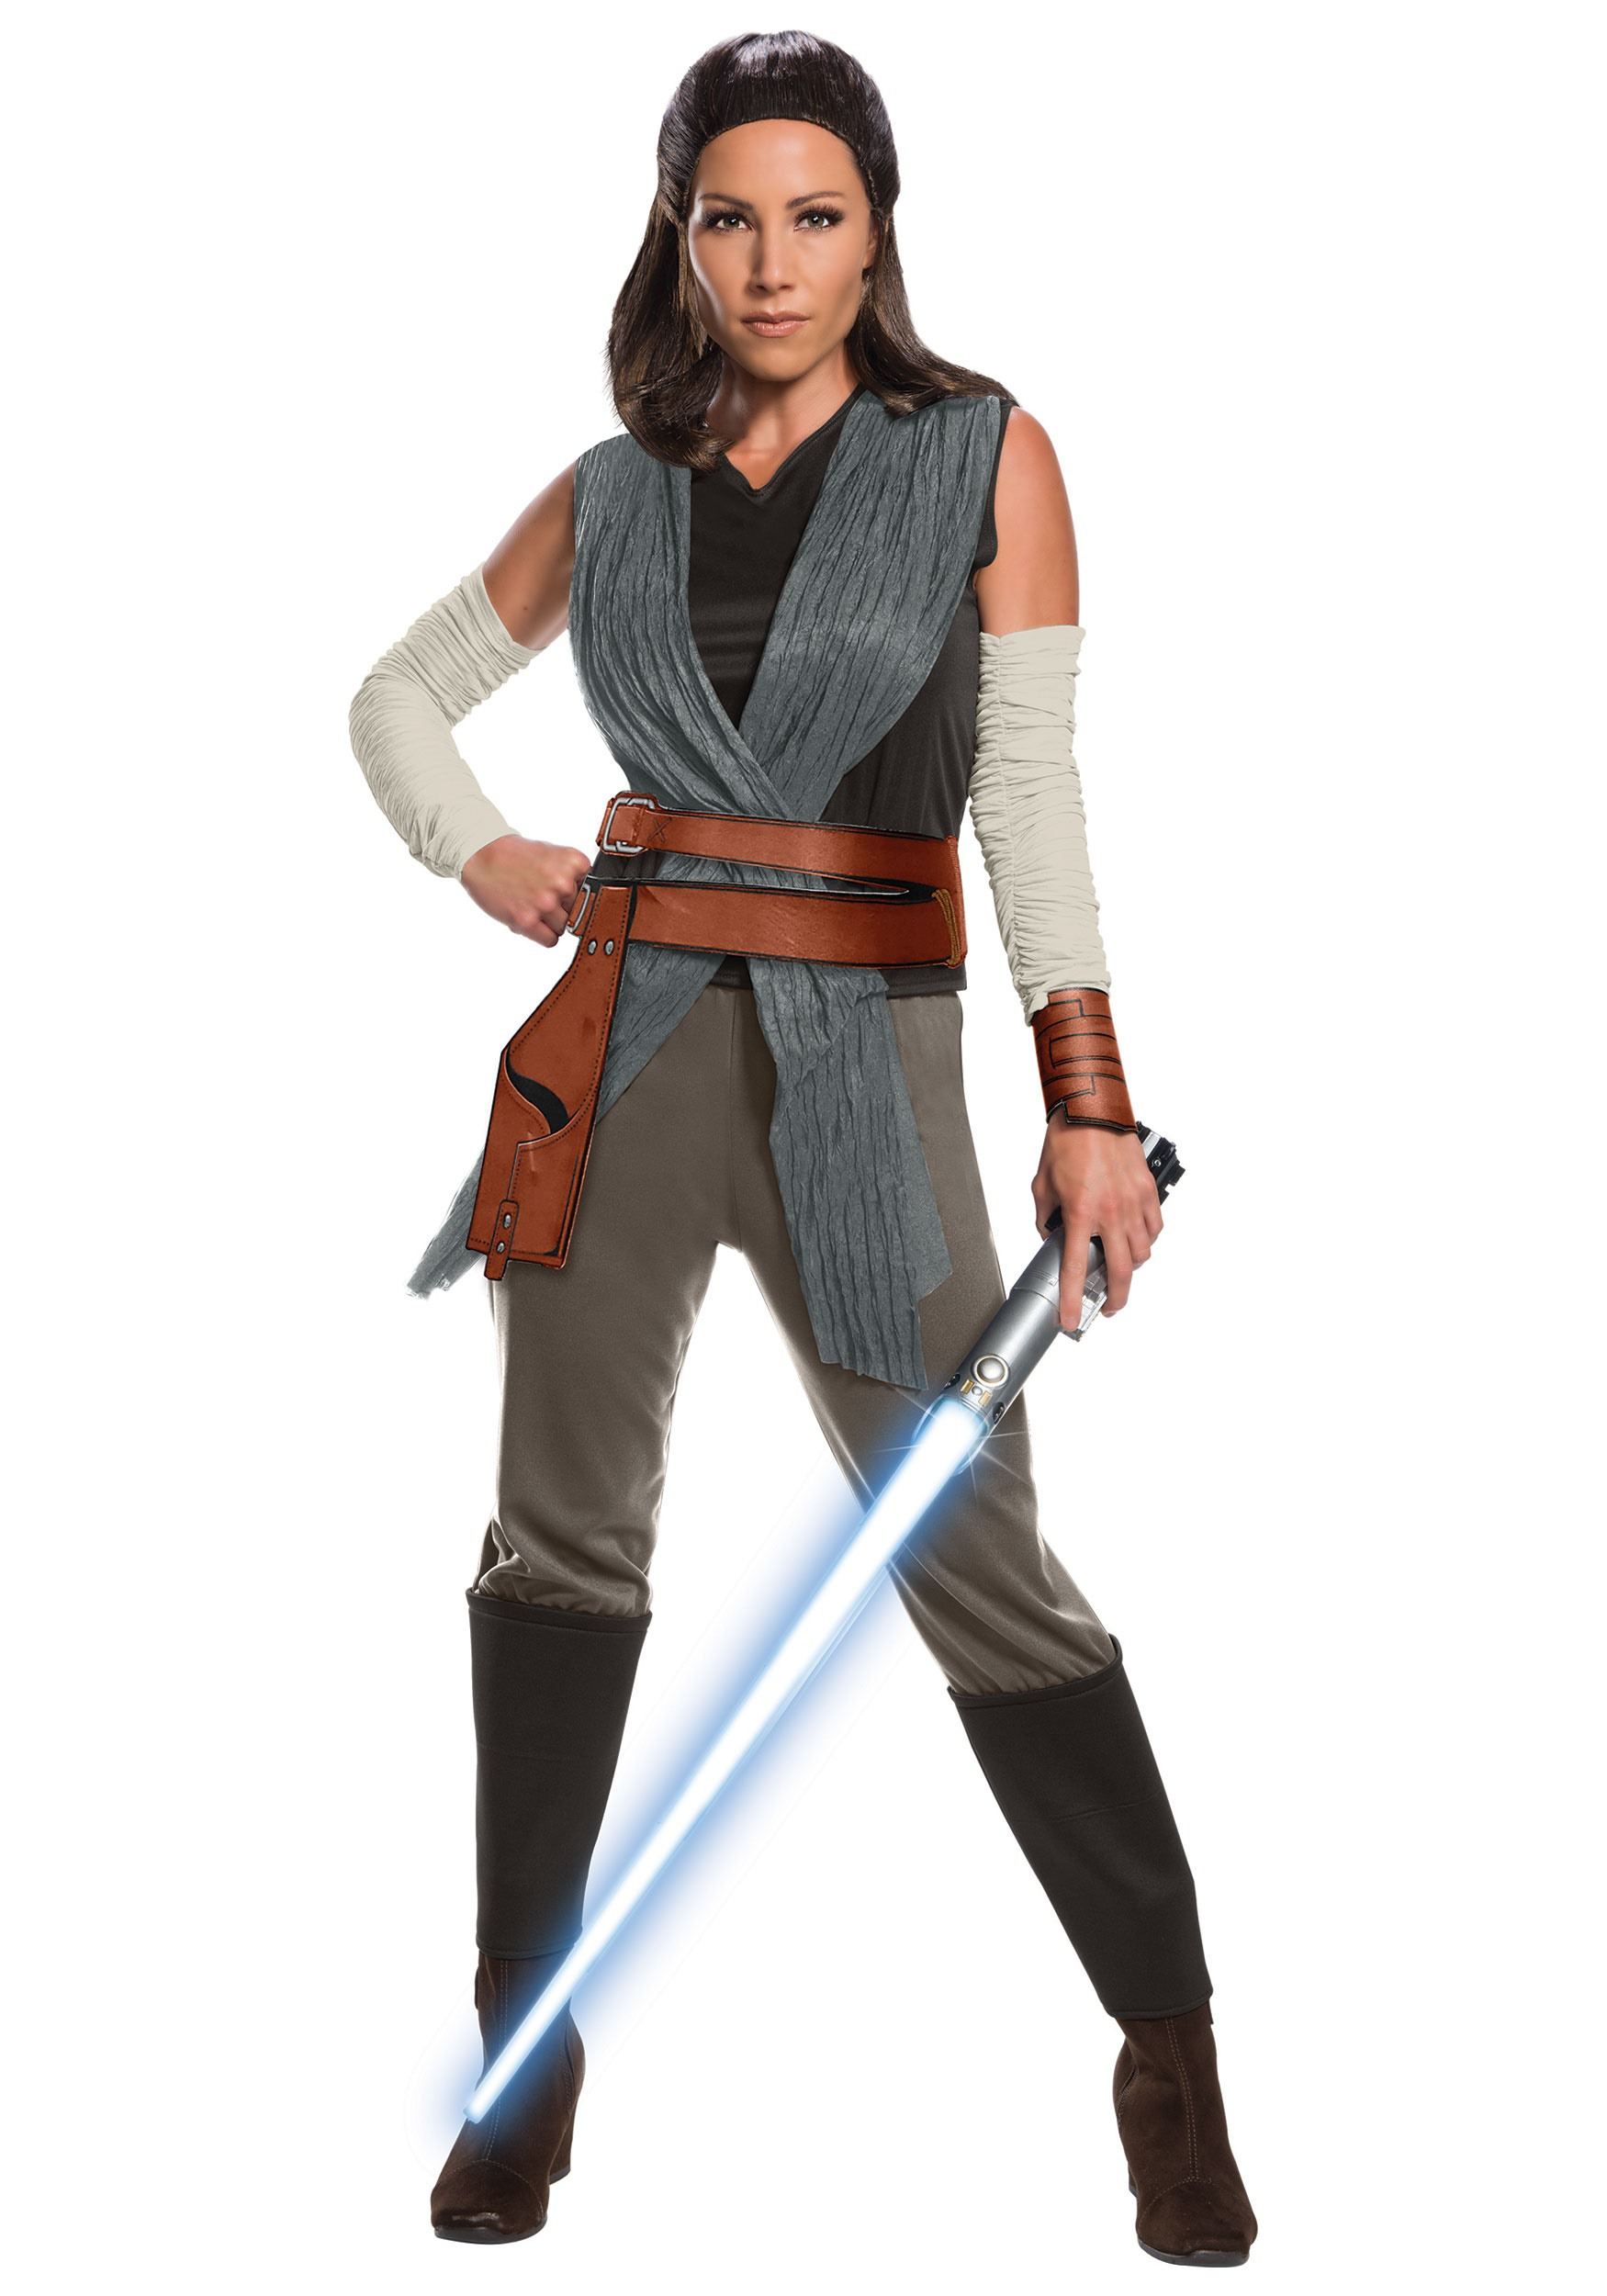 Star Wars The Last Jedi Deluxe Rey Costume for Women